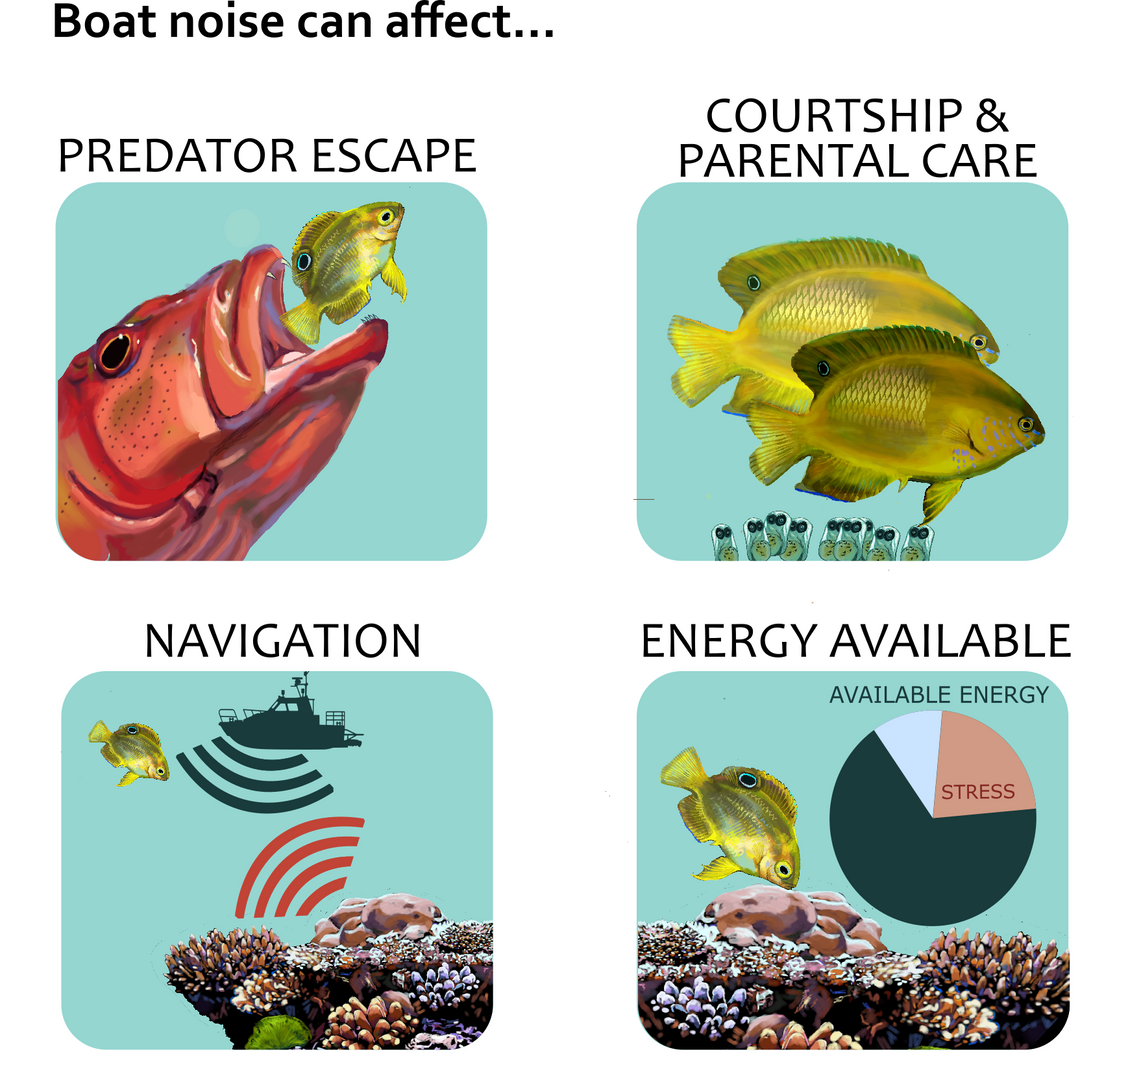 effects of boat noise 4.png